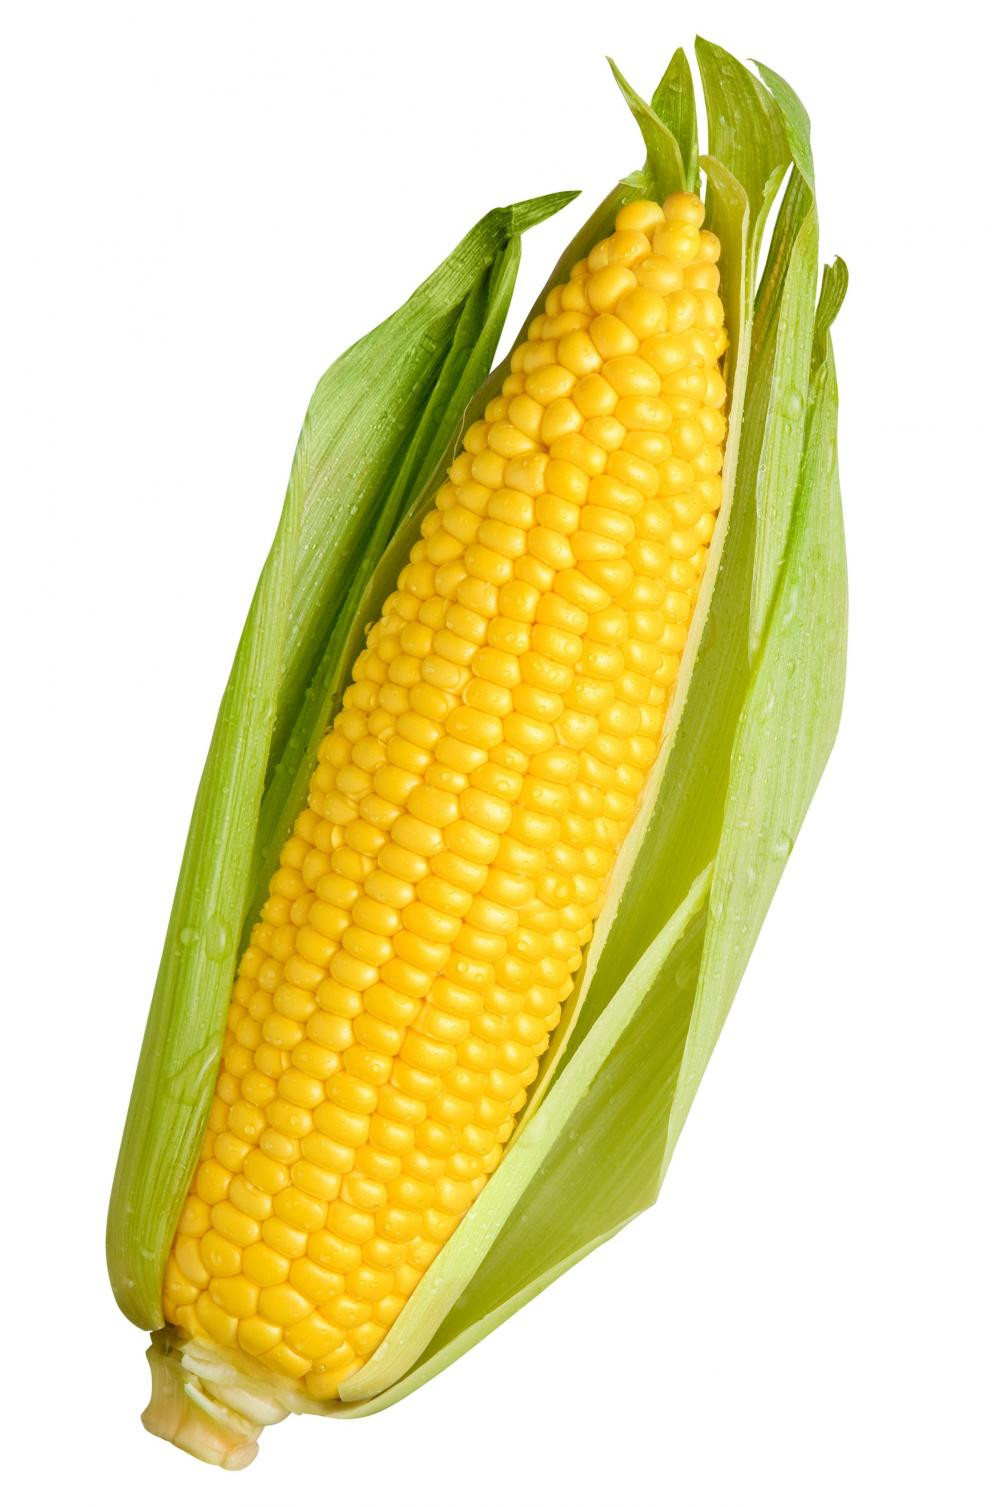 Gluconolactone is derived from Corn